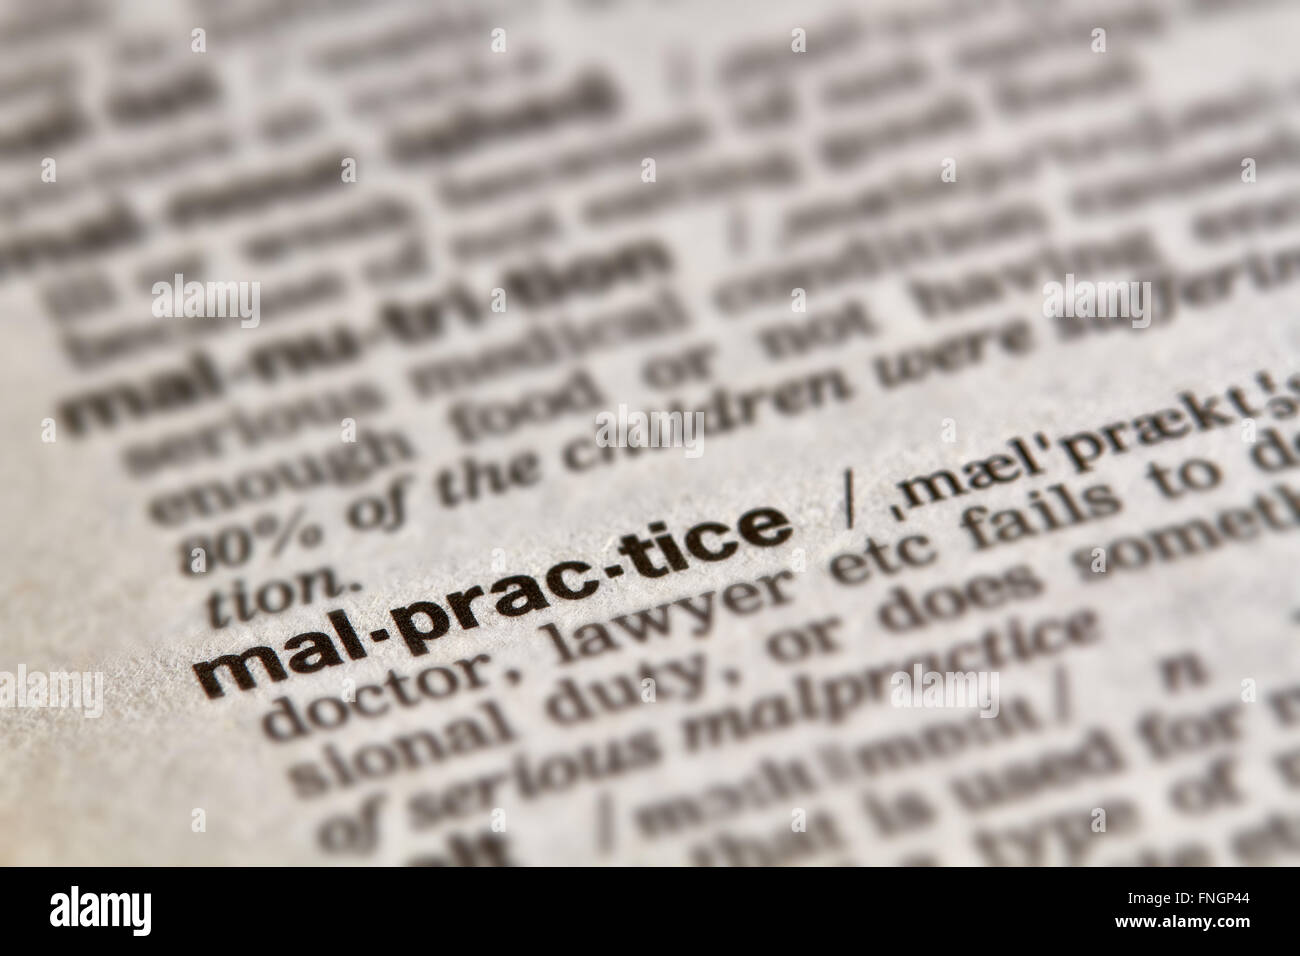 malpractice word definition text in dictionary page stock photo